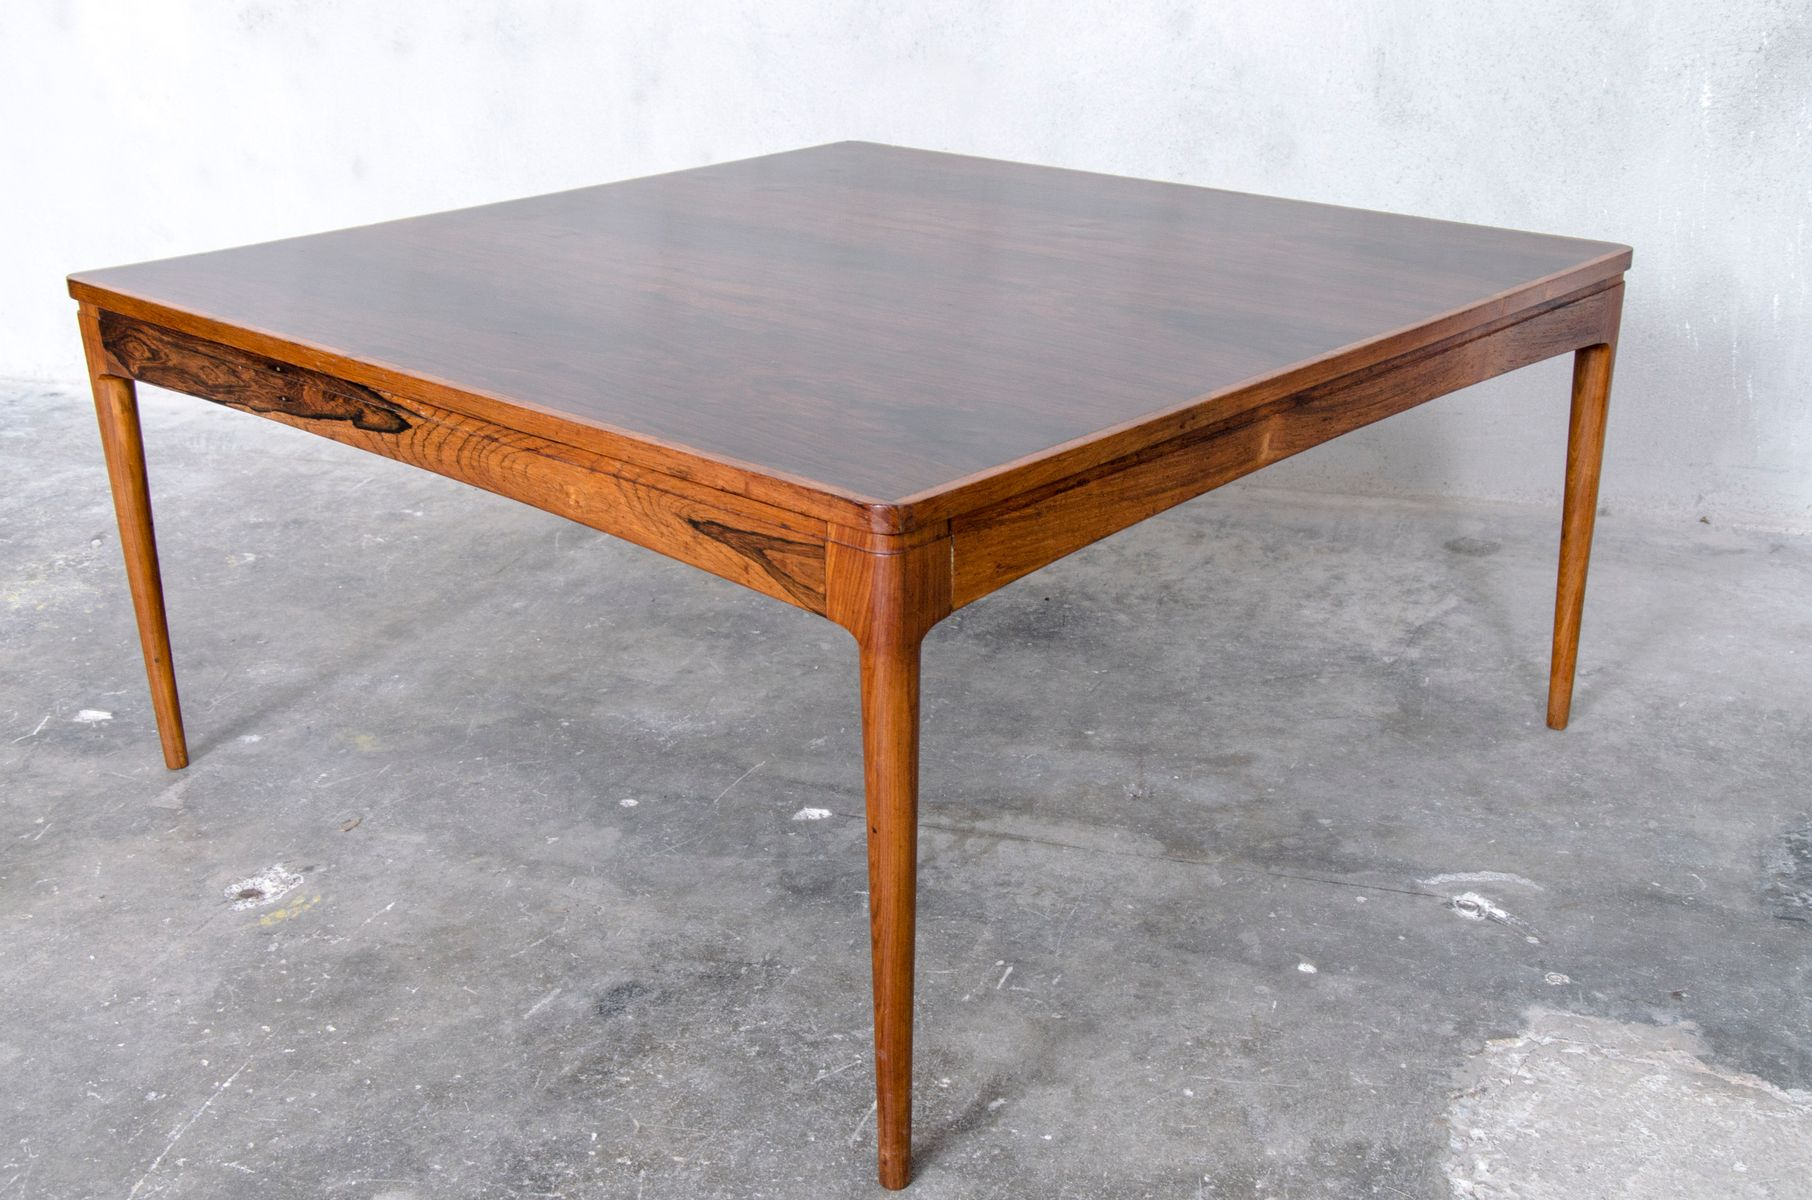 Coffee Table by Ole Wanscher for AJ Iversen 1950s for sale at Pamono